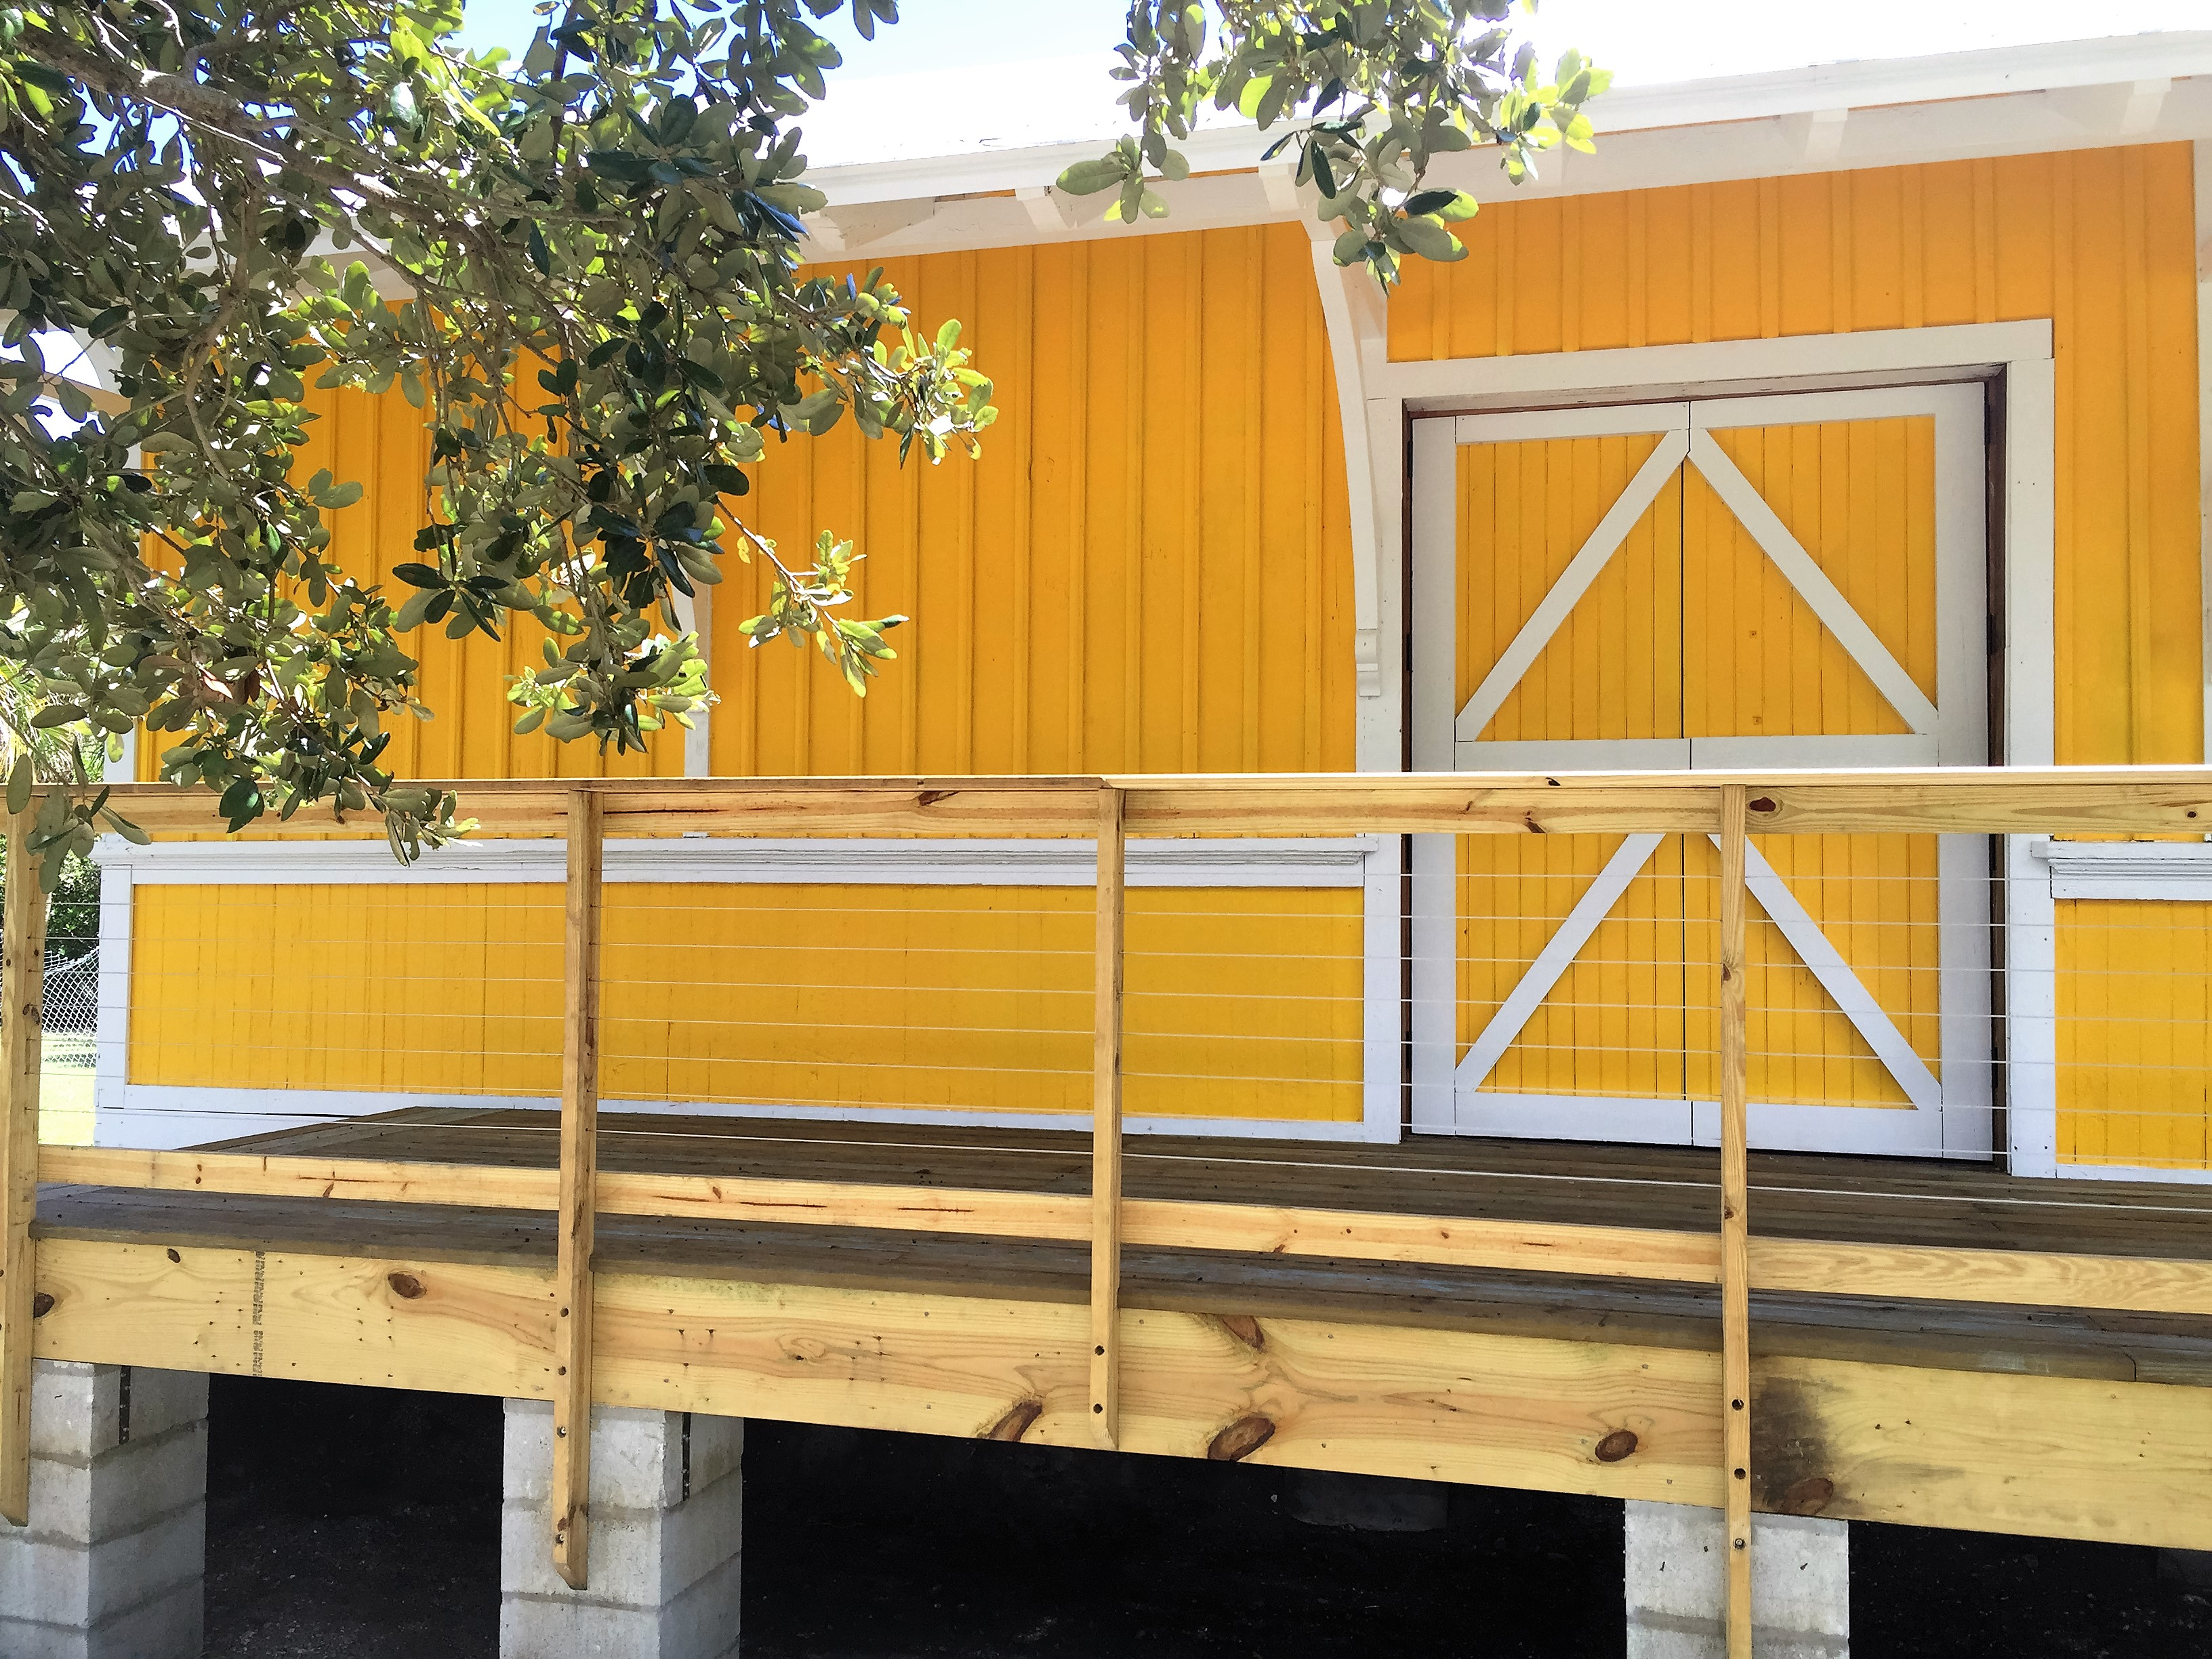 The 22-feet-by-53-feet depot was a stopping point during the early days of the railroad. While the railroad operated for about two decades, it was located on the west side of Alternate A1A, just south of Center Street, across from Bell's Mobile Home Park.